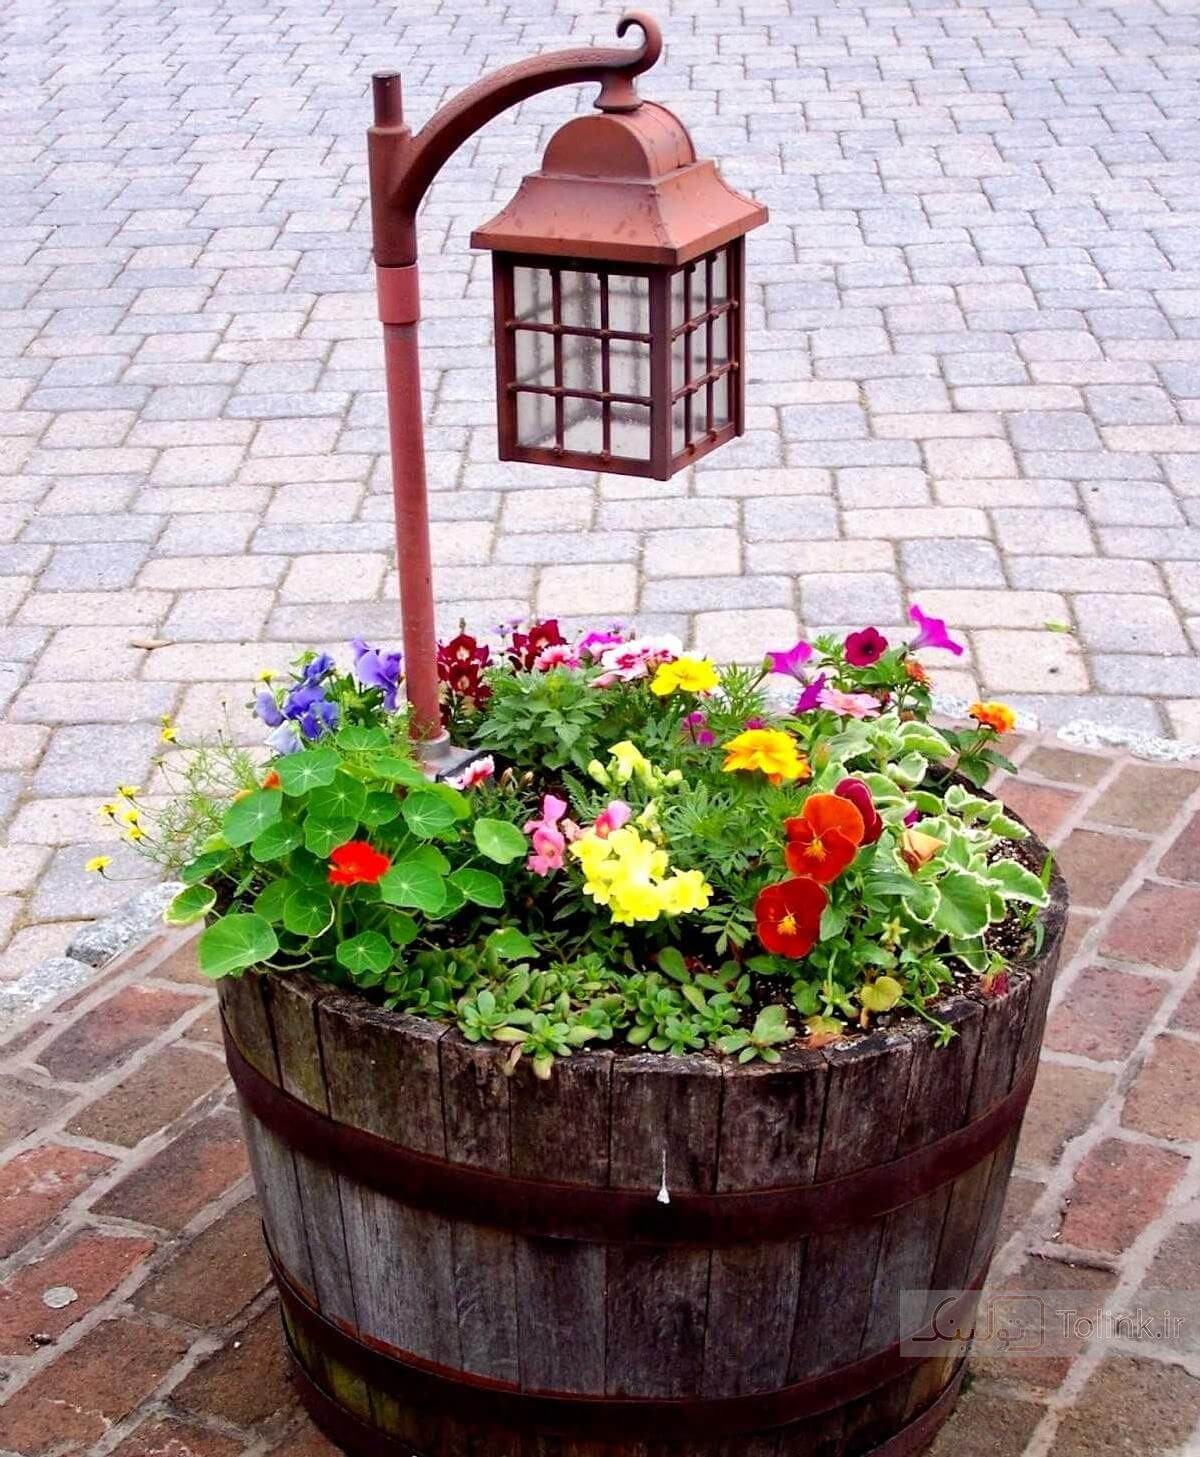 Kinkade Lantern Wine Barrel Planter